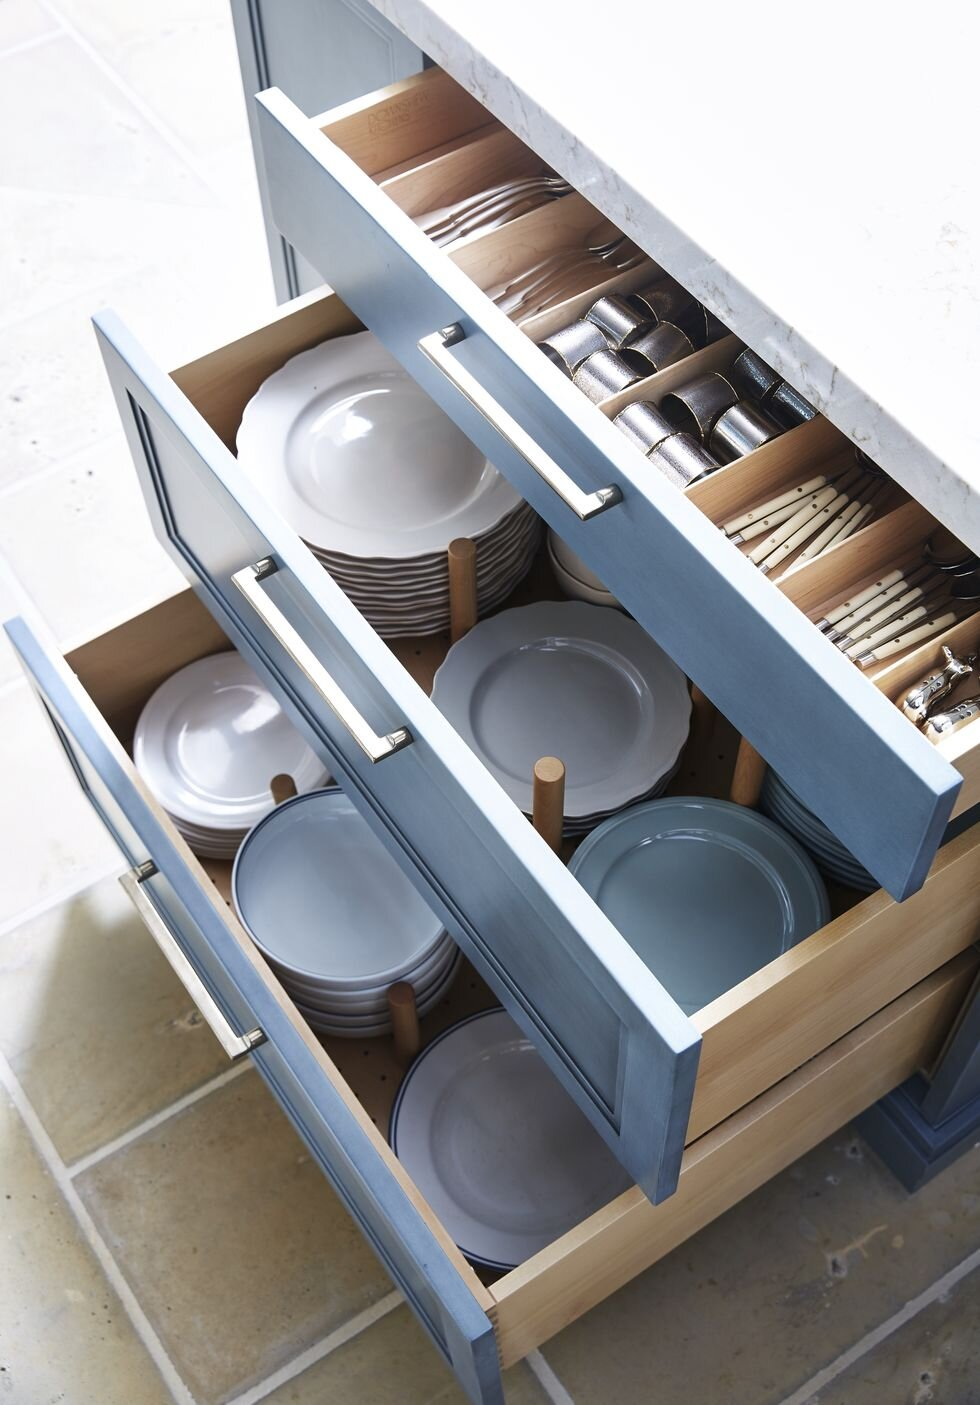 kitchen_drawers_dishes.jpg